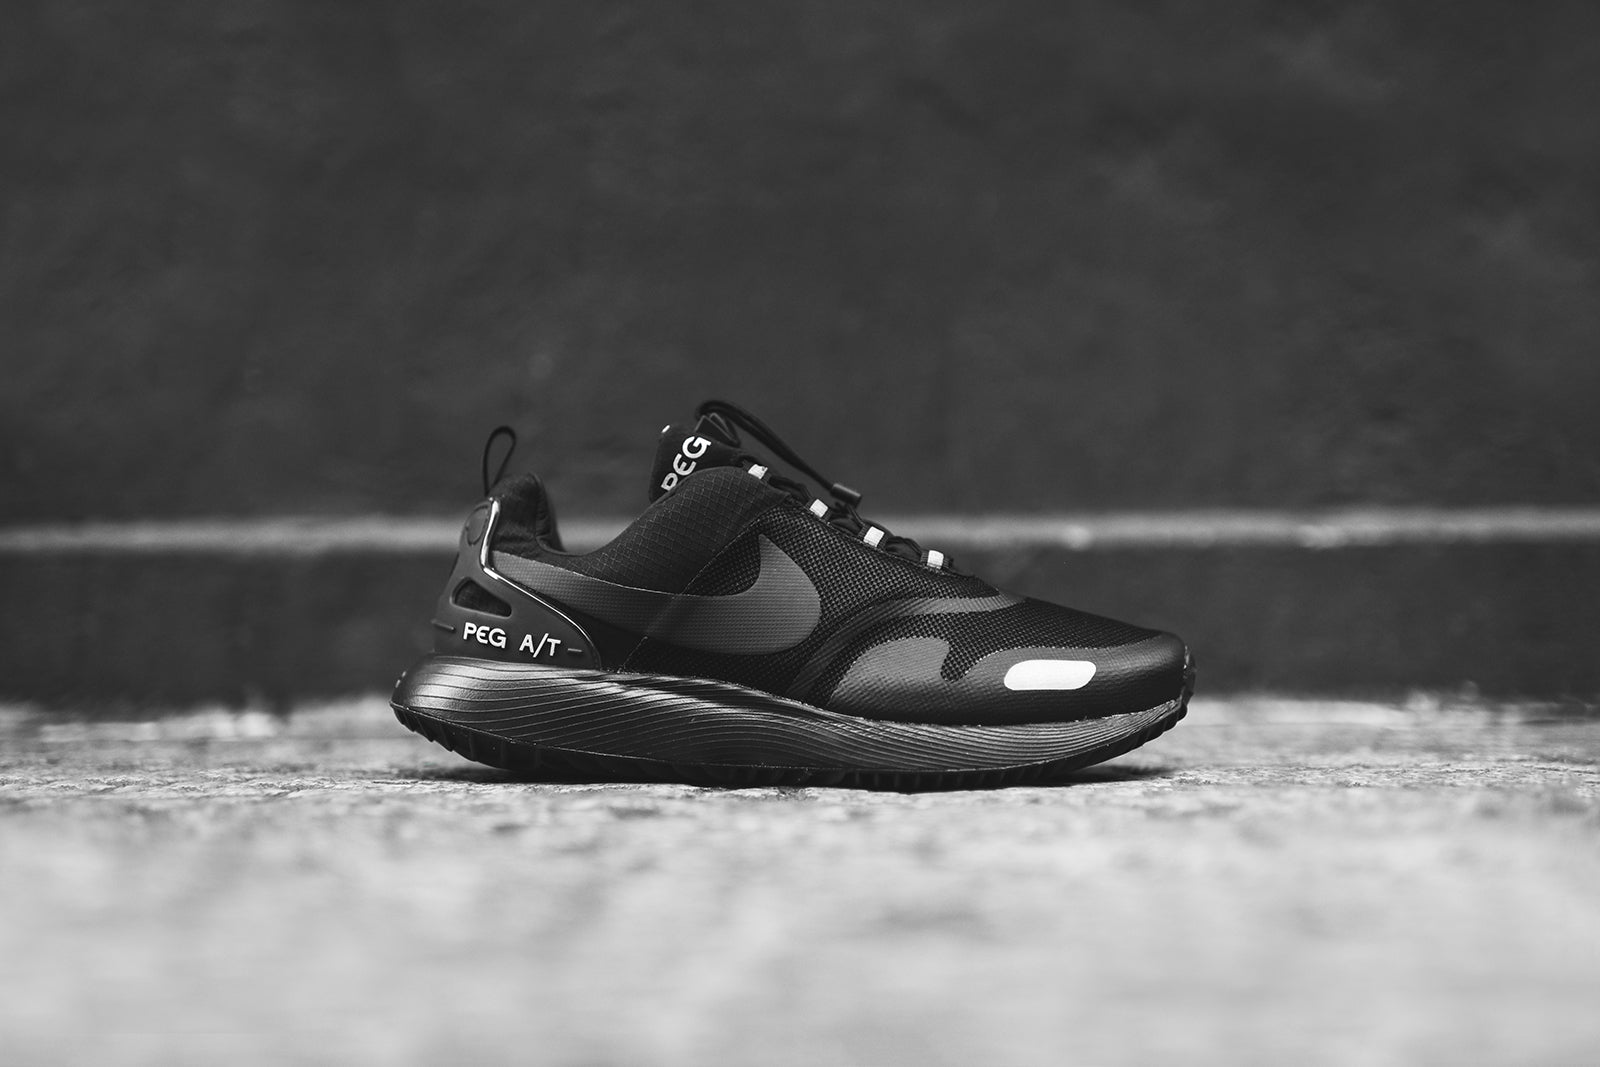 separation shoes f3c6e 37f83 Nike Air Pegasus AT Winter - Black – Kith